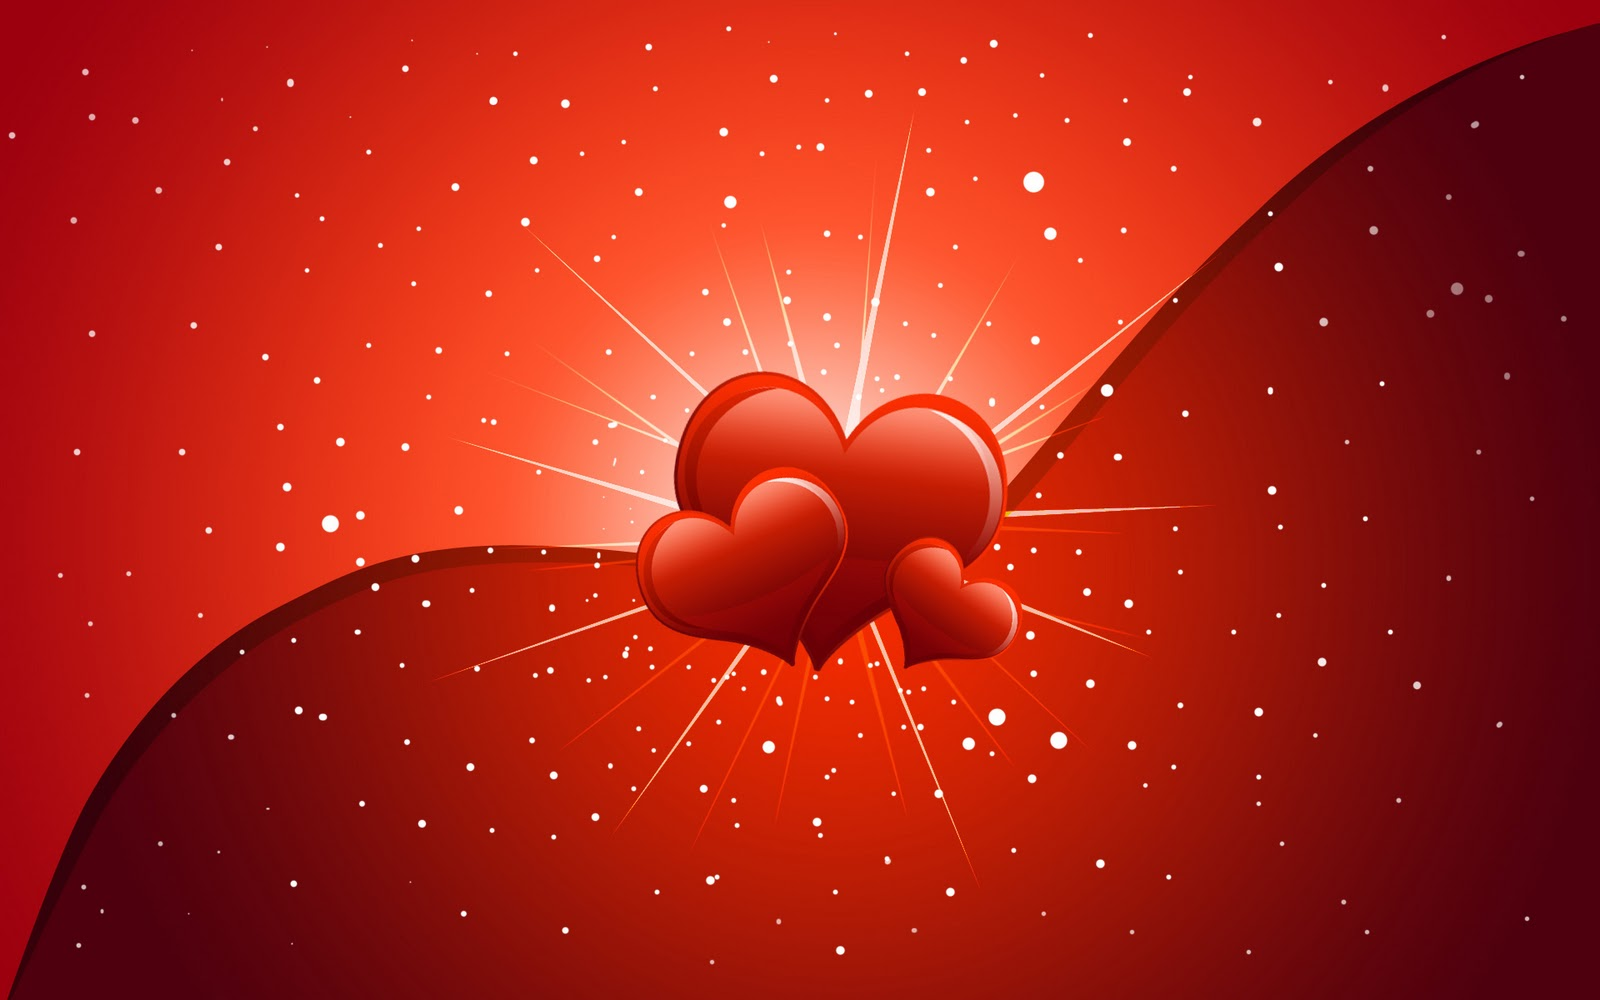 Wallpaper Valentines 21040 Hd Wallpapers Background 1600x1000